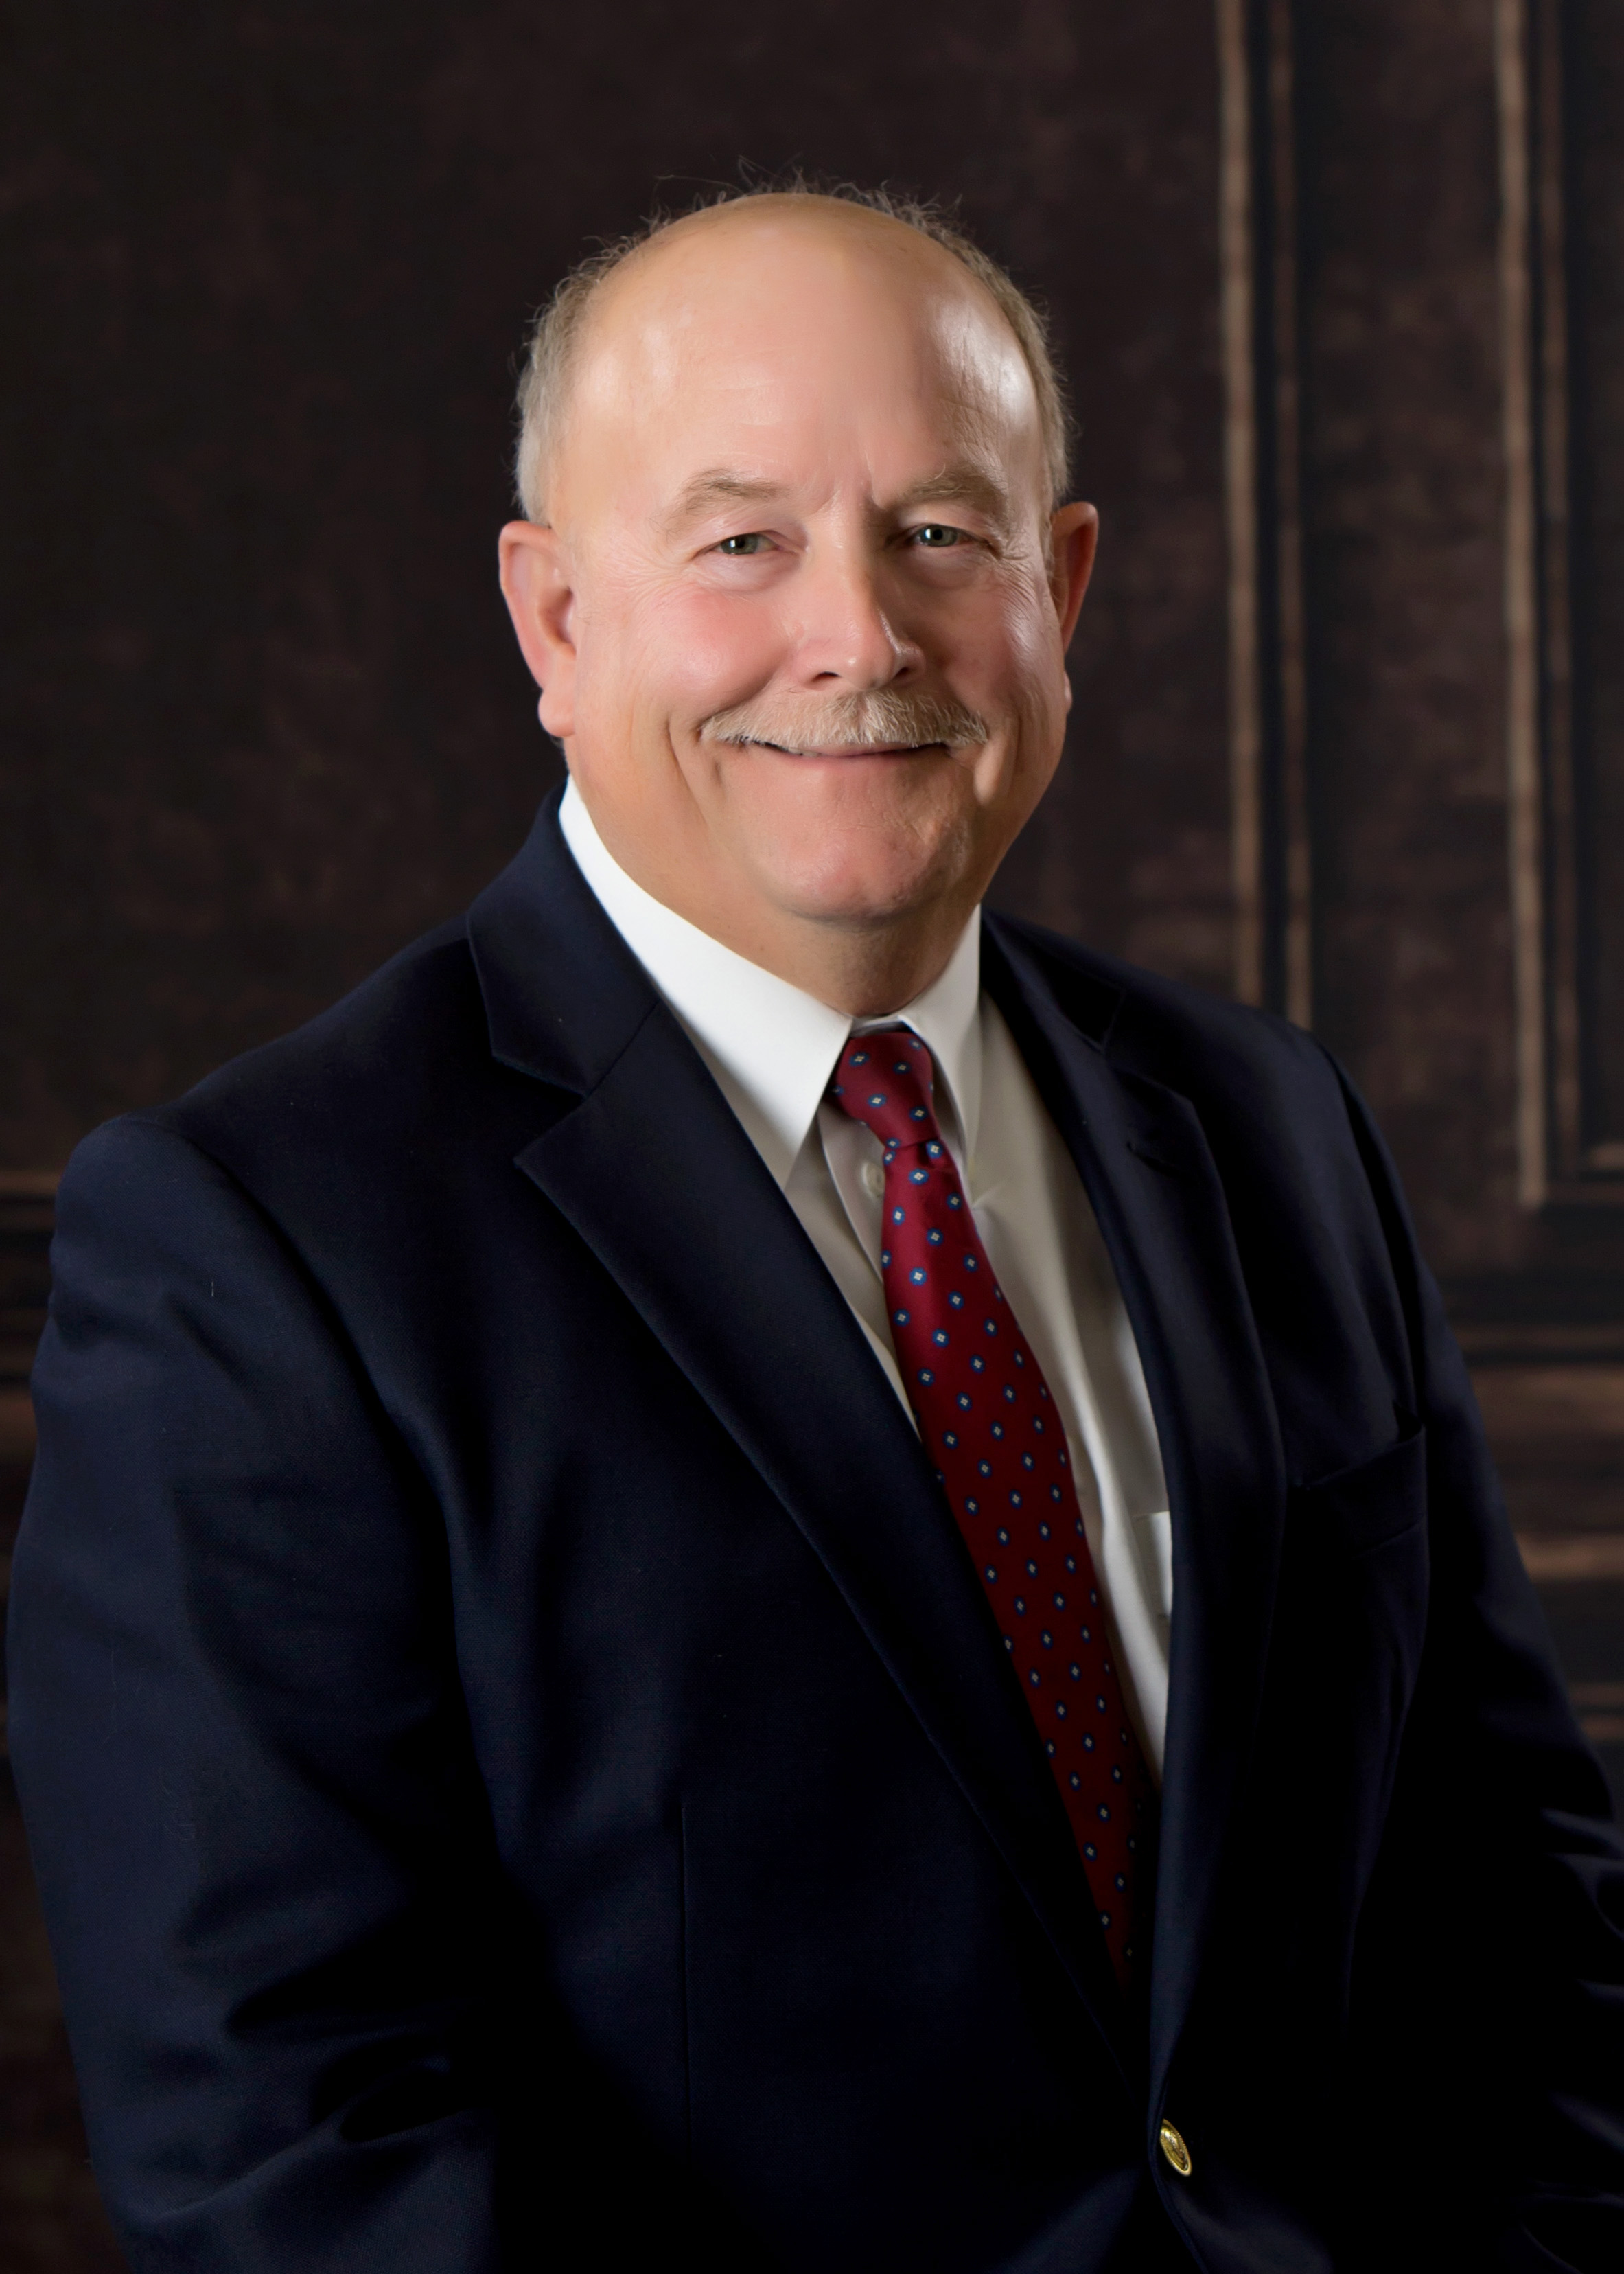 David Summers, Attorney - dsummers@capelawfirm.com